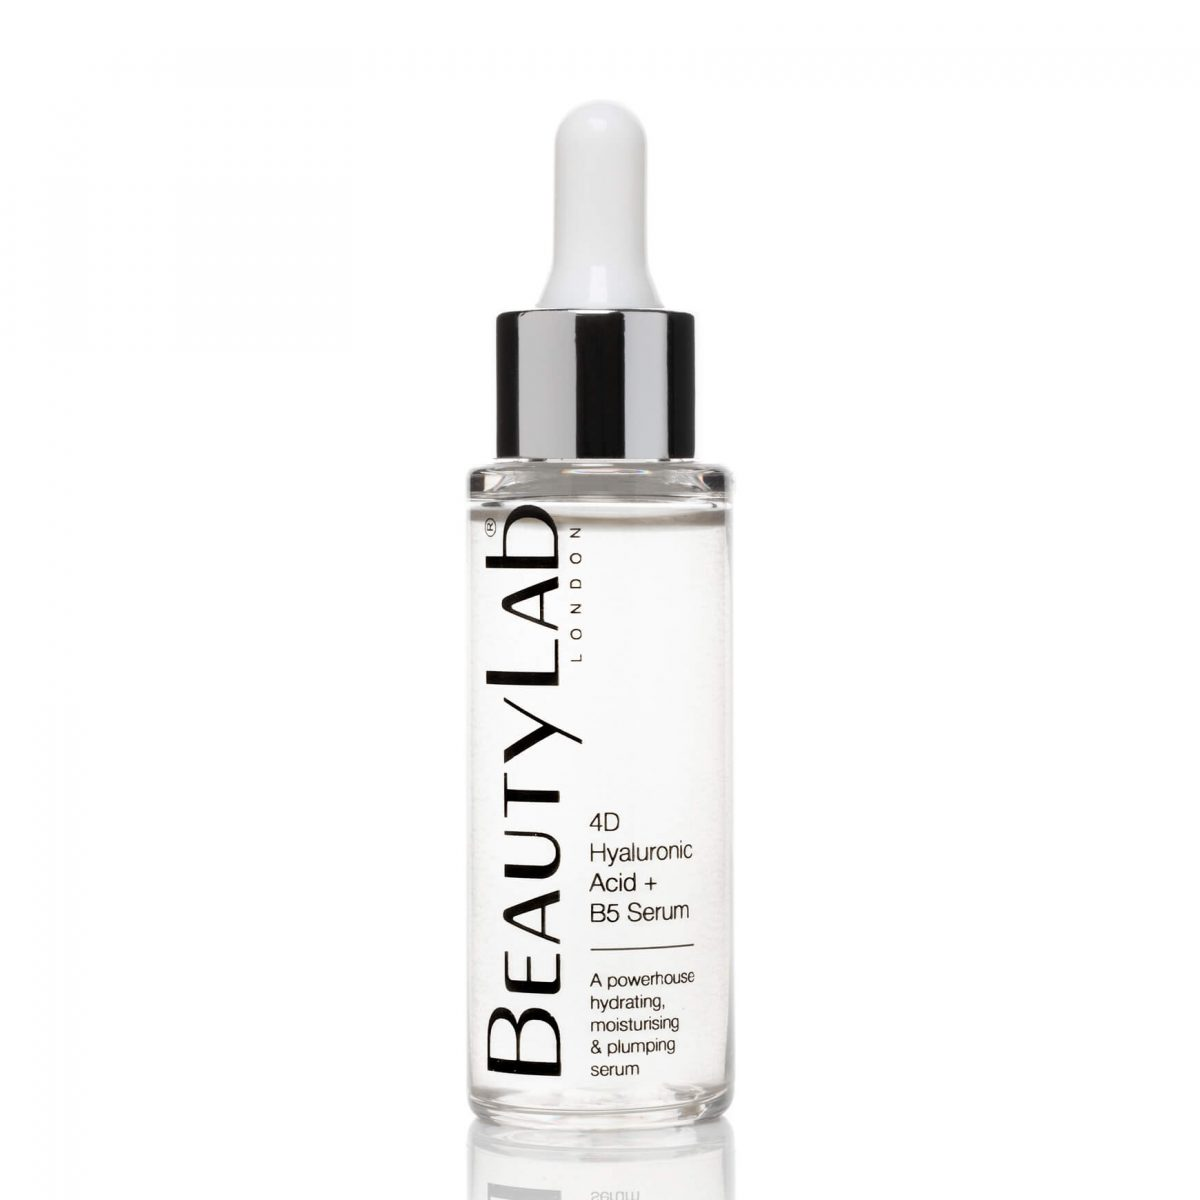 4d Hyaluronic Acid + B5 Serum